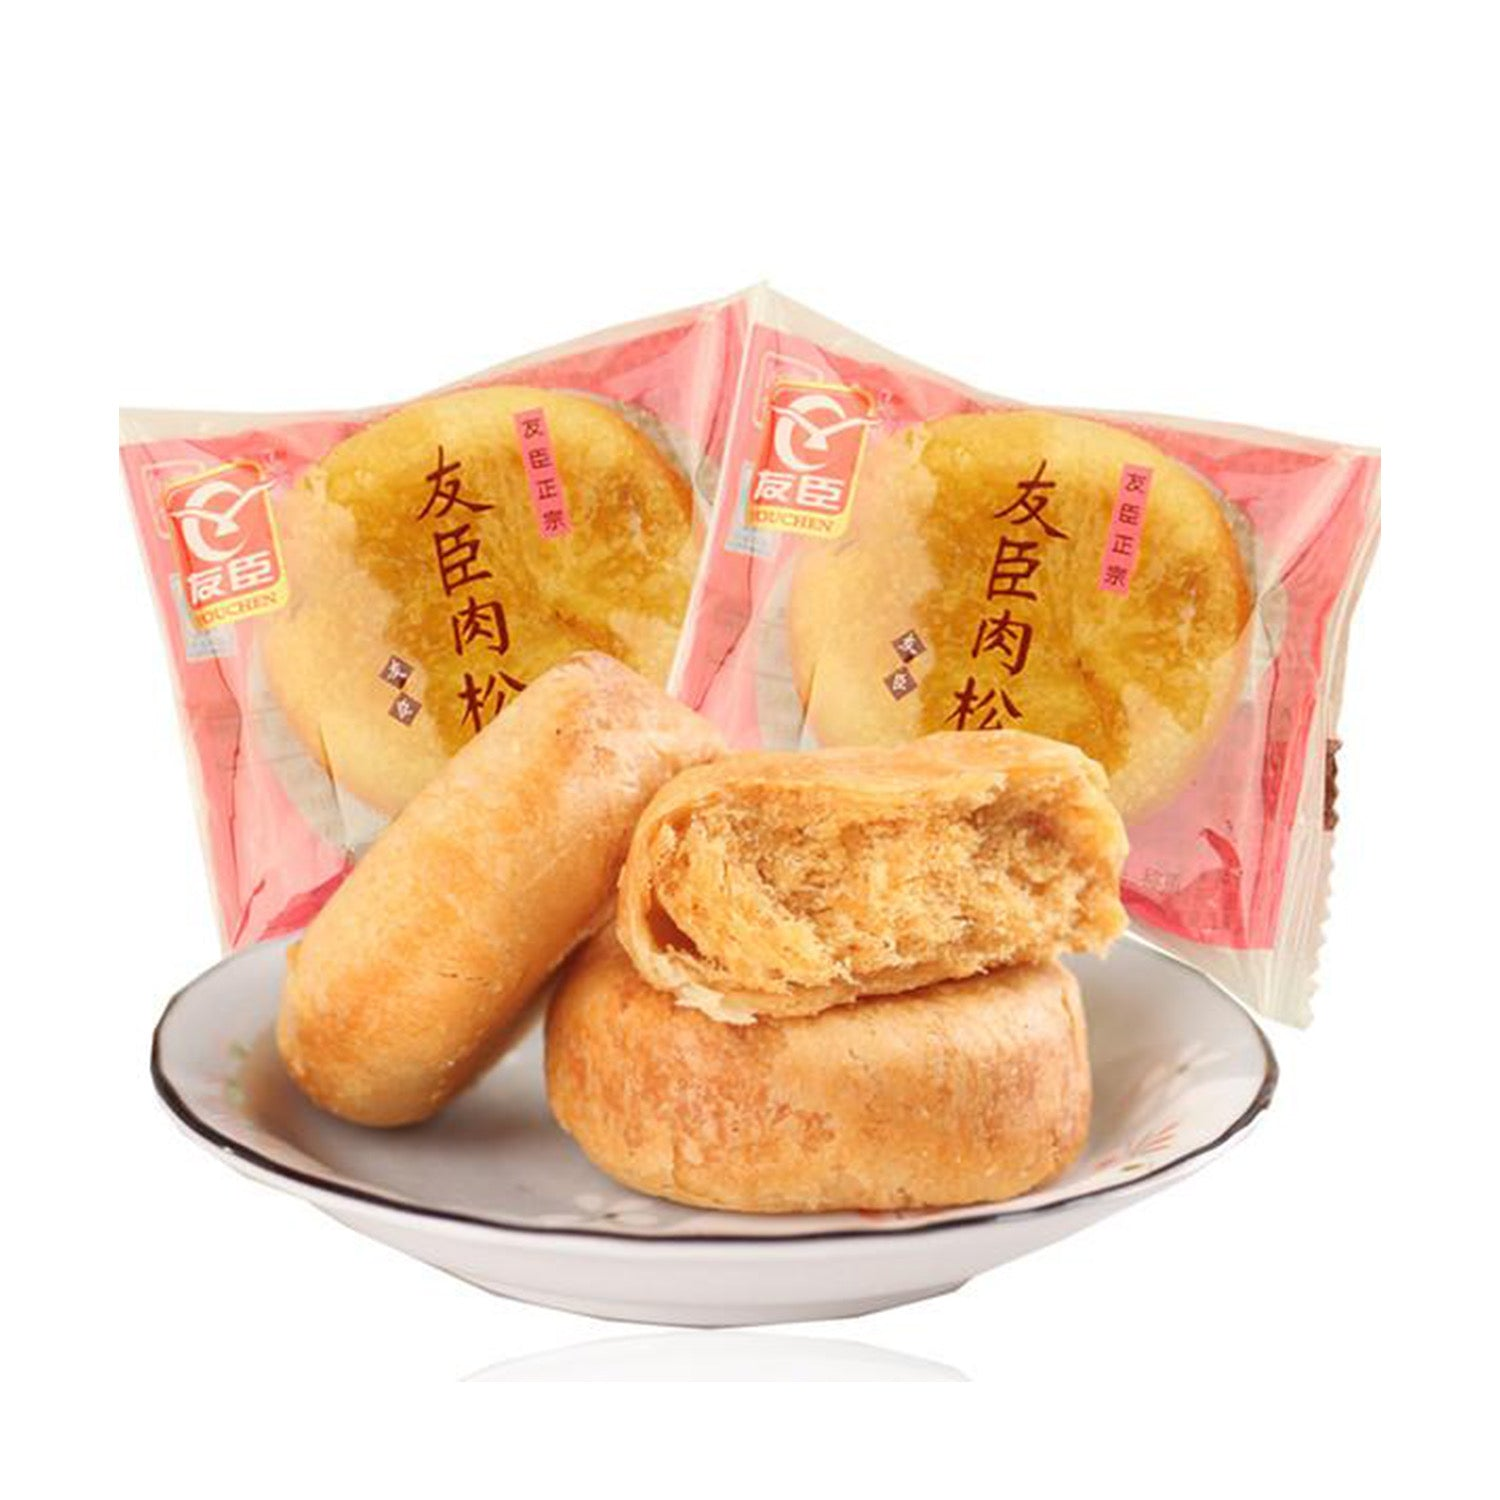 Youchen Meat Muffin (5pcs)